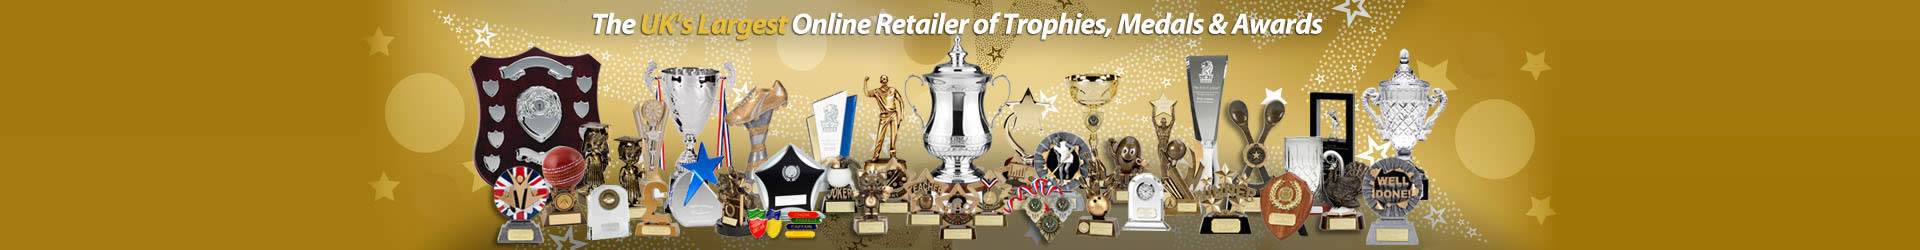 The UK's Largest Online Retailer of Trophies, Medals & Awards